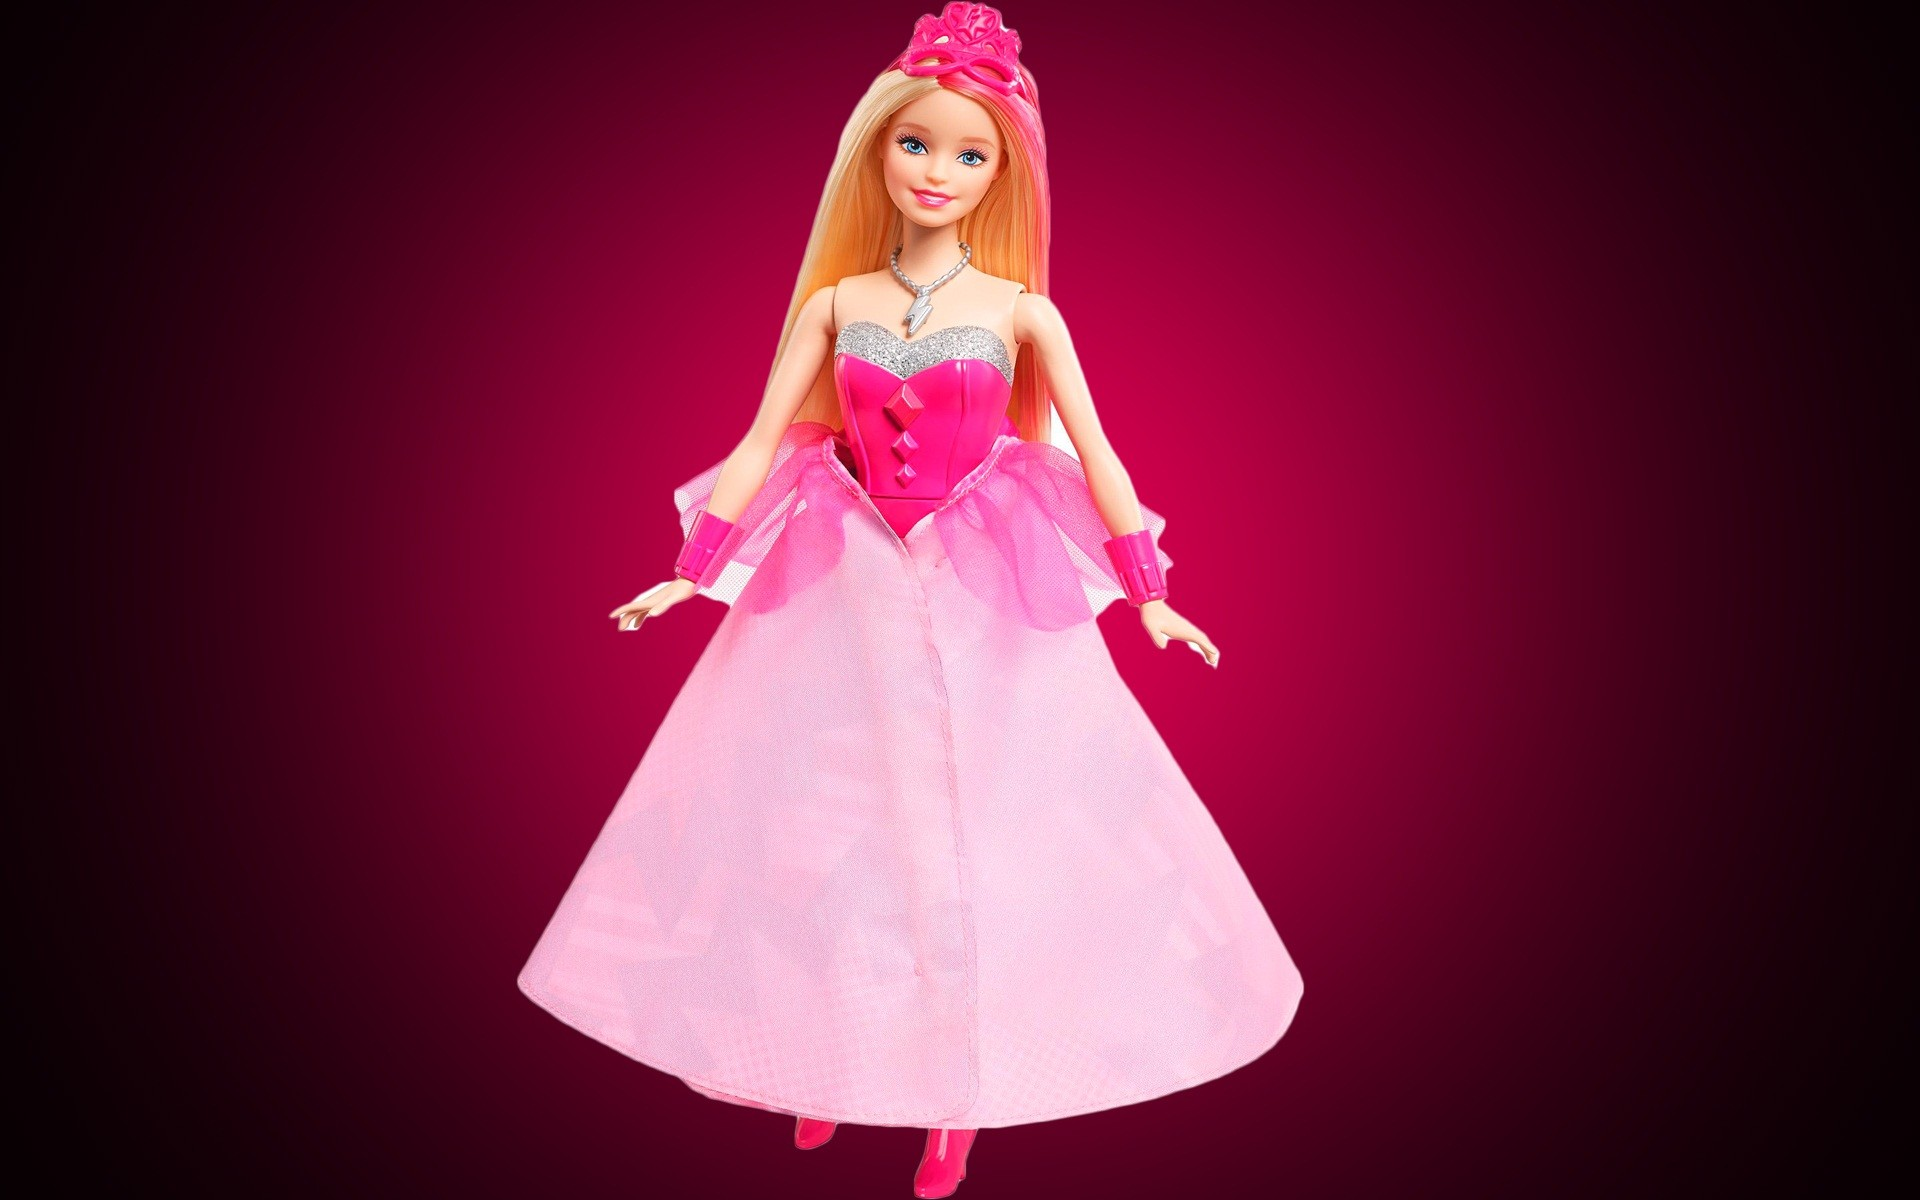 Animated Happy Birthday Wallpaper Free Download Latest Wallpaper Of Barbie On 2018 183 ①